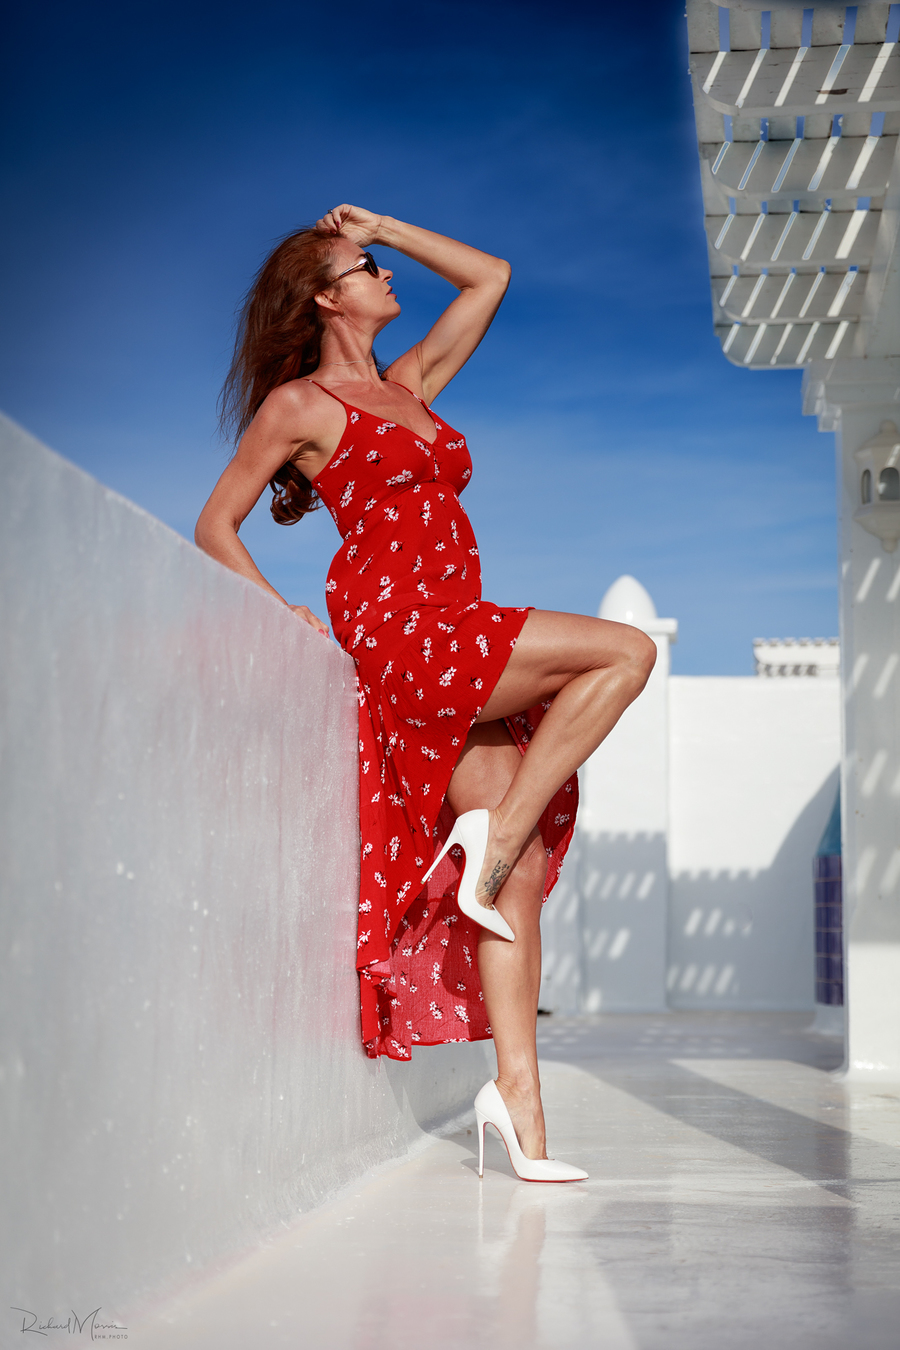 Red Hot / Photography by RHM.Photo, Model Alibrooks / Uploaded 9th January 2021 @ 06:36 PM